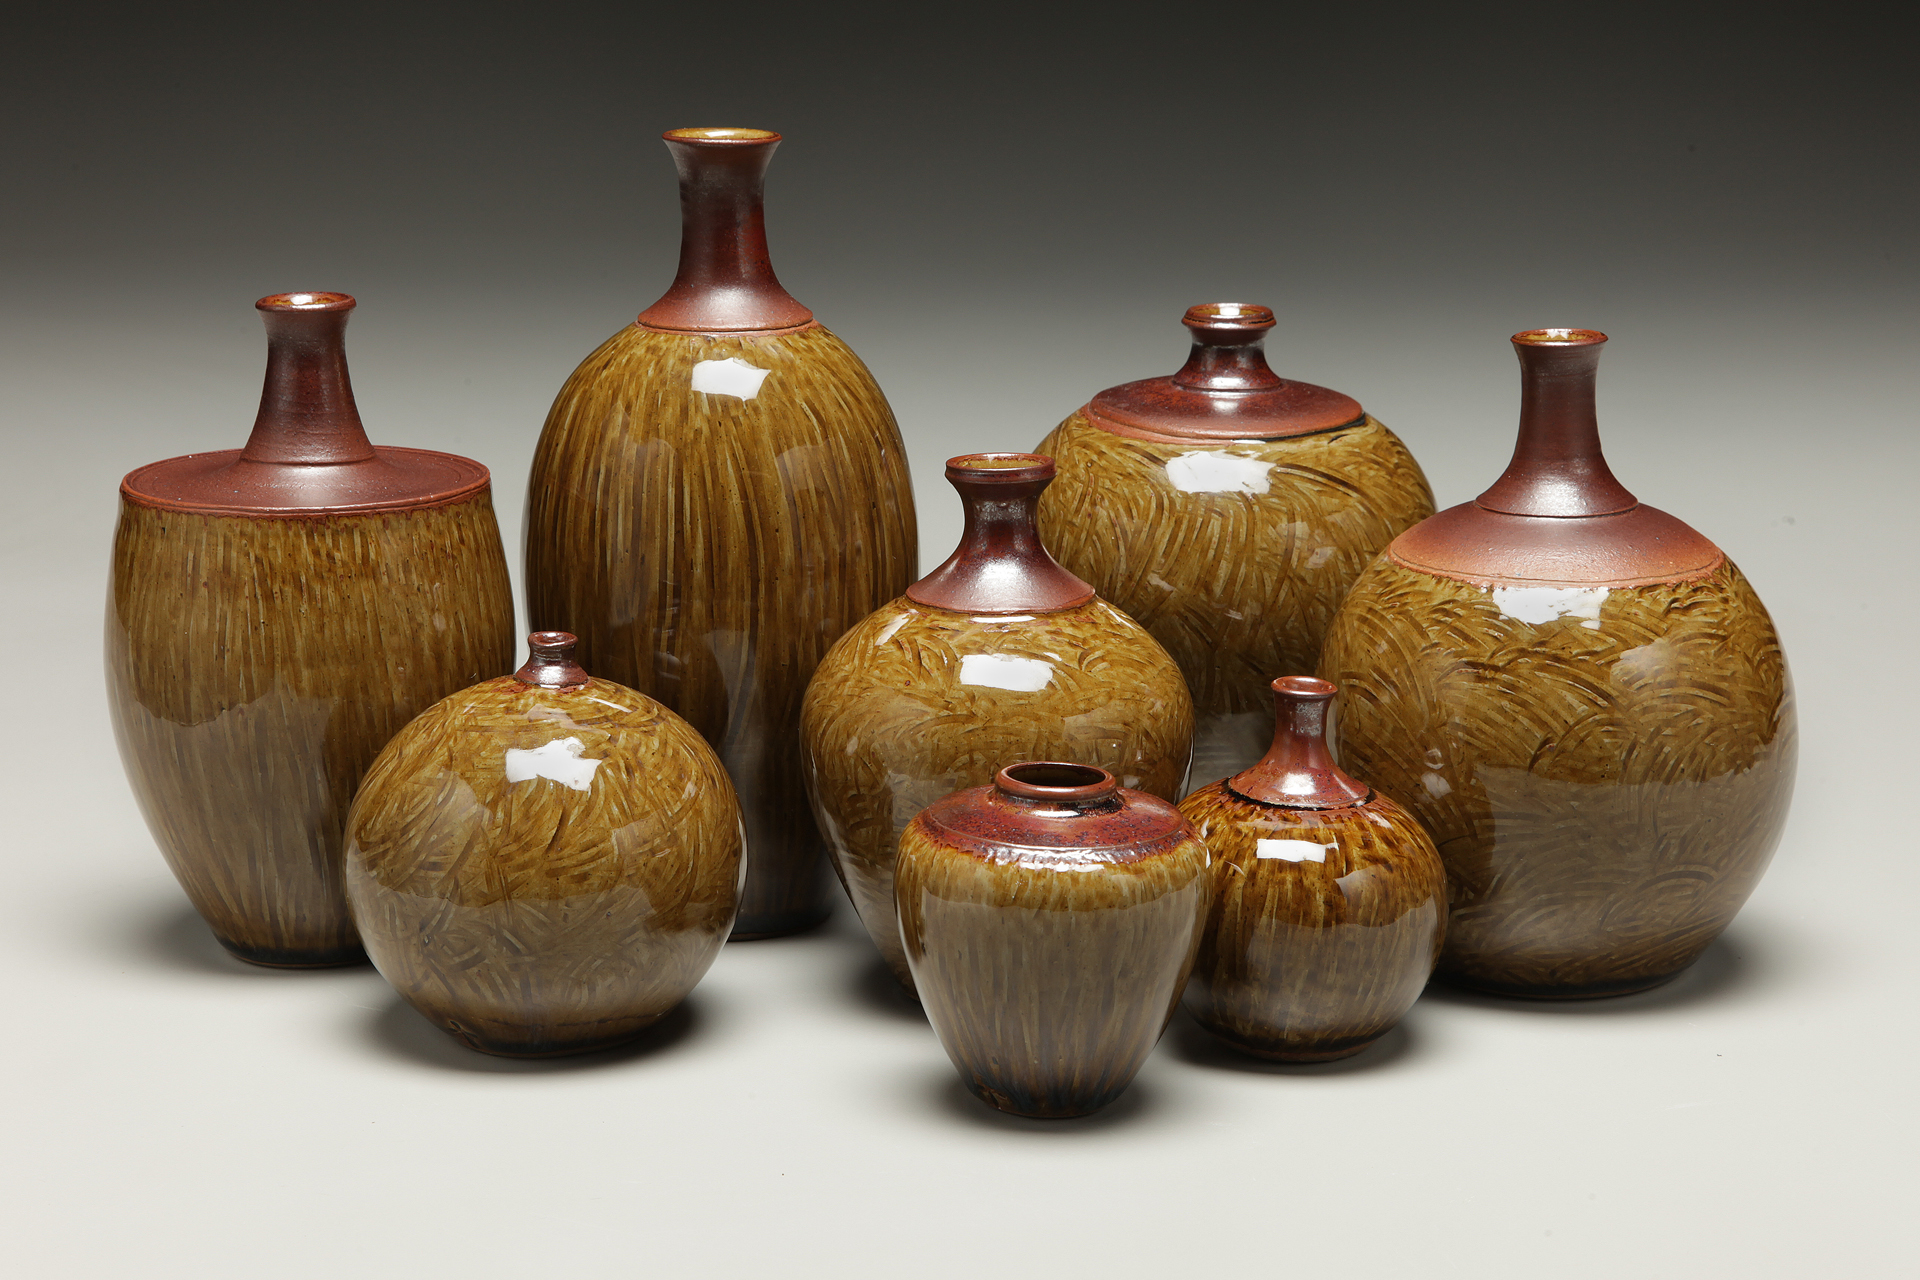 Bottles by Karen Dubois